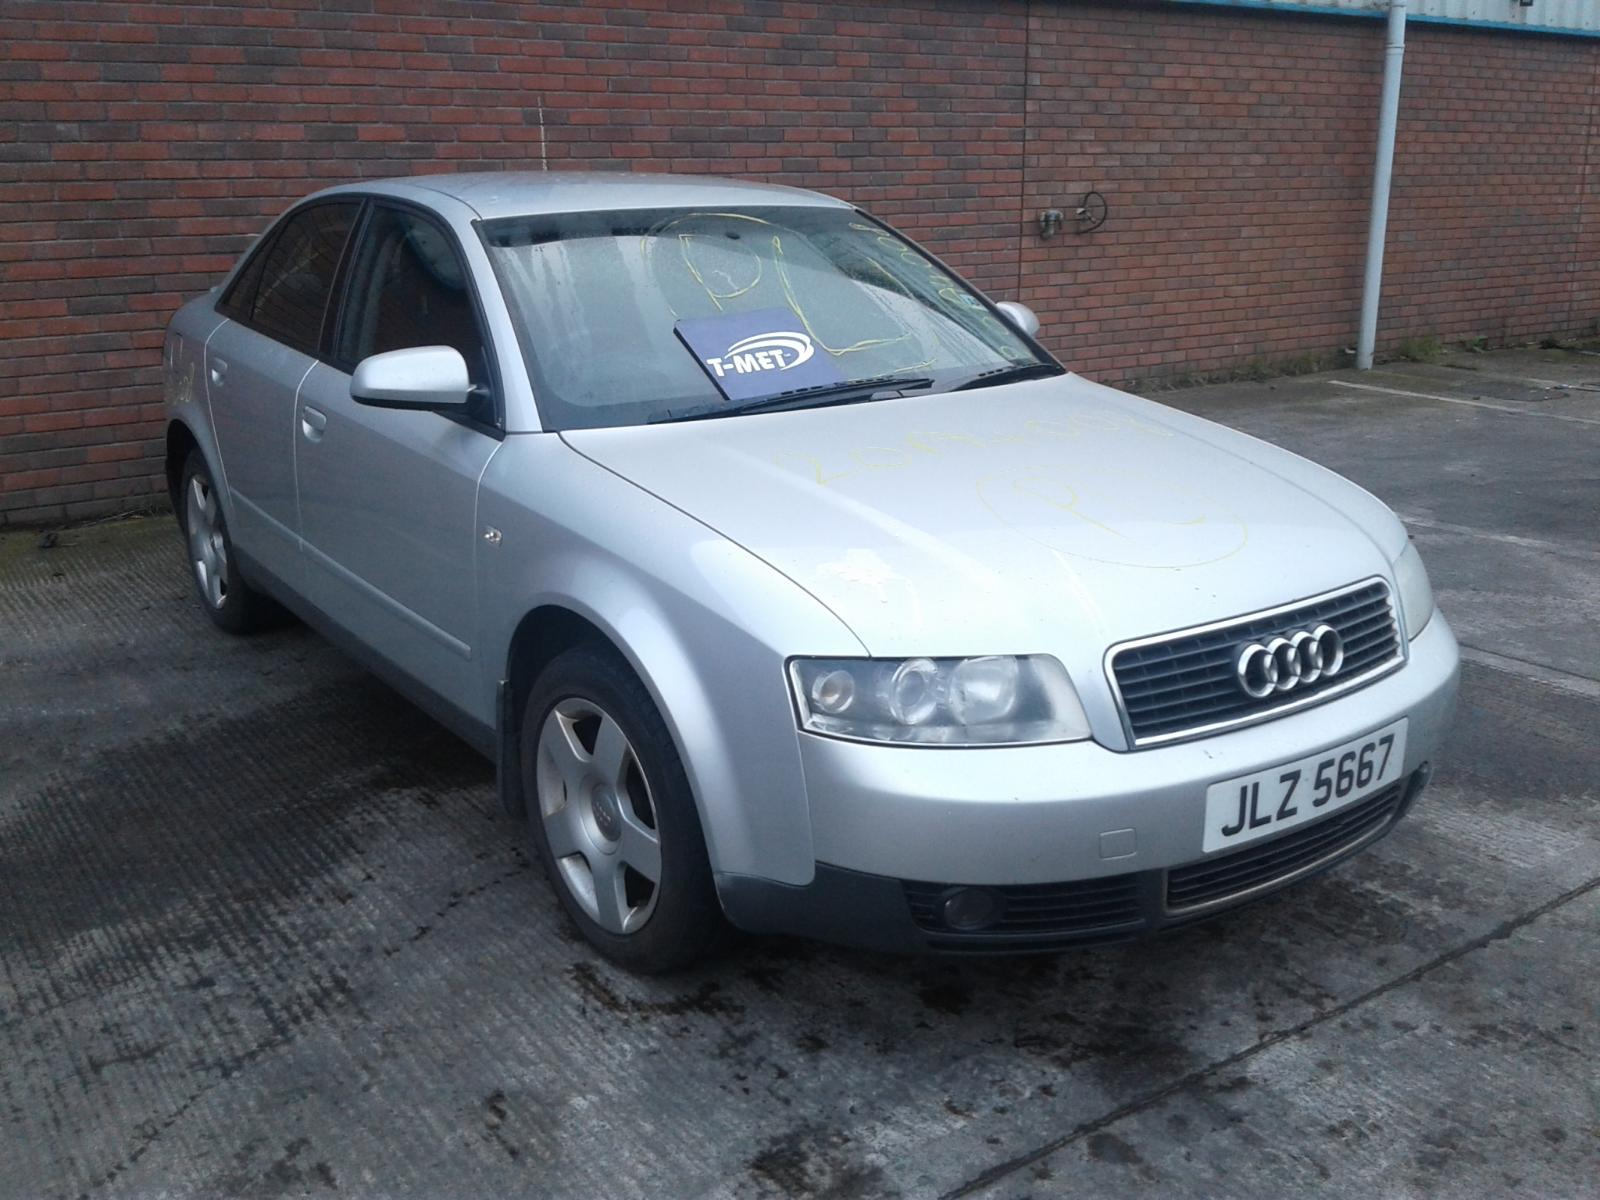 2002 Audi A4 Spare Car Parts Available From T